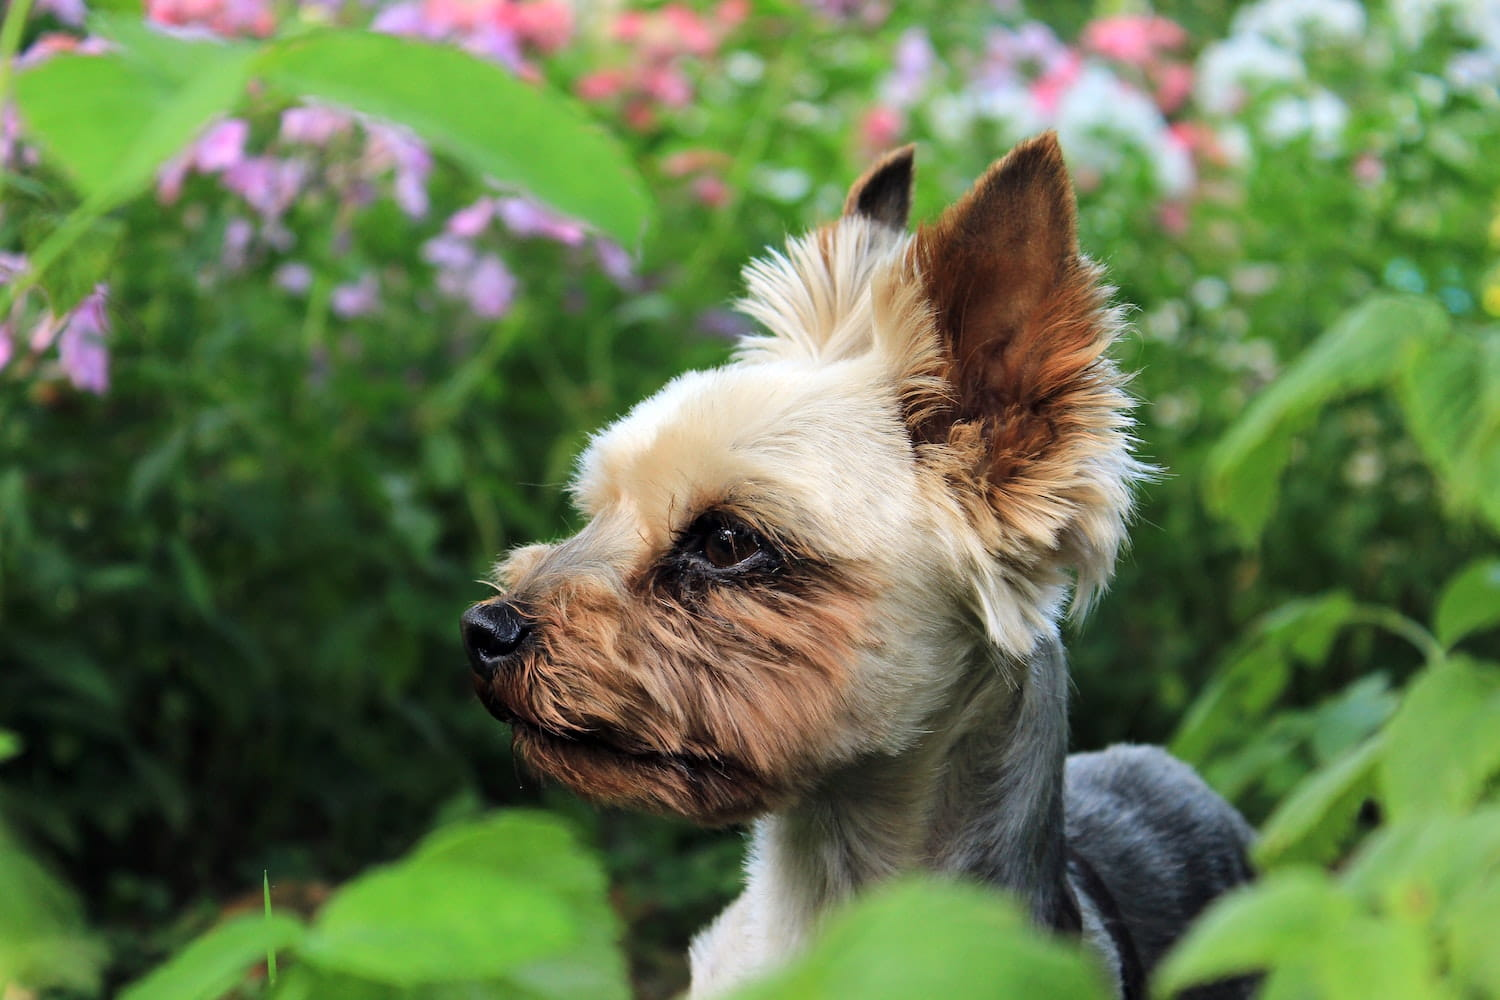 A Yorkshire Terrier outside in a garden of flowers